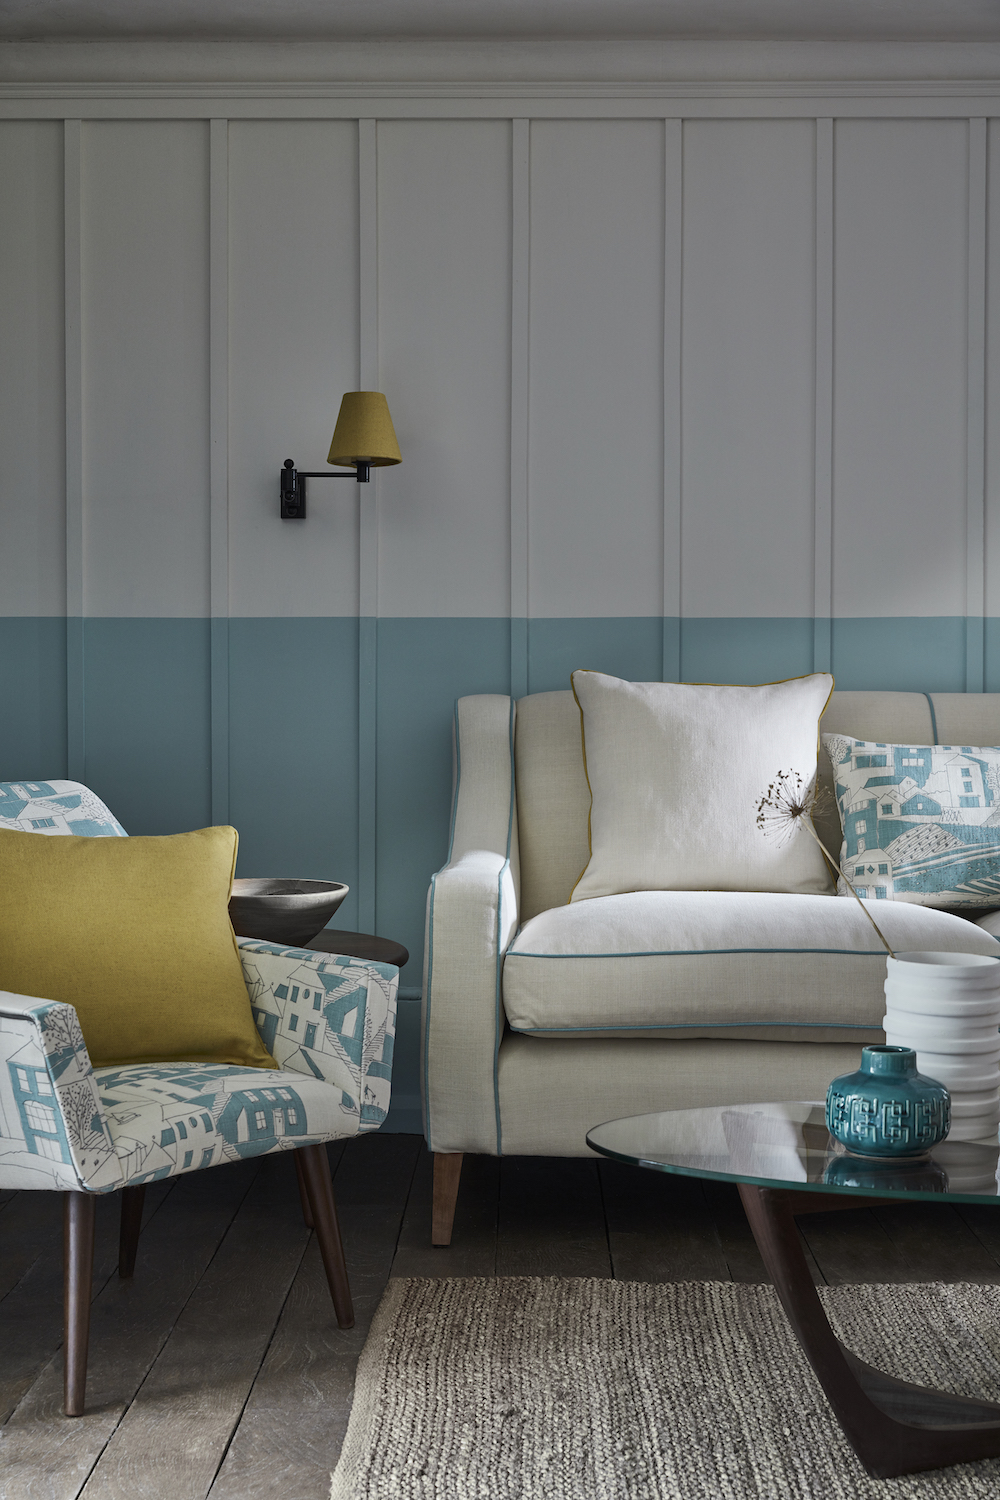 CHAIR: By the Sea Teal, Charcoal SEA-20-38 £52/mtr,CUSHION (on chair): Self piped and zipped Plain Linen Saffron PLAIN-52 £48/mtr,CHEDWORTH SOFA: Plain Linen Cream PLAIN-3 £48/mtr piped in Plain Linen Teal PLAIN-20 £48/mtr,CUSHION (left): Plain Linen Cream PLAIN-3 £48/mtr piped in Plain Linen Saffron PLAIN-52 £48/mtr,CUSHION (right): Rectangular self piped and zipped By the Sea Teal, Charcoal SEA-20-38 £52/mtr,LAMPSHADE: Plain Linen Saffron PLAIN-52 £48/mtr,LIGHT FITTING: Hanson Wall light in Matt Black by Jim Lawrence £87.20,RUG: Handmade Looped by Scumble Goosie £49 each,PAINT: Main wall Linen Wash 33 and Brighton 203 by Little Greene Paint Company £42 per 2.5 ltr.